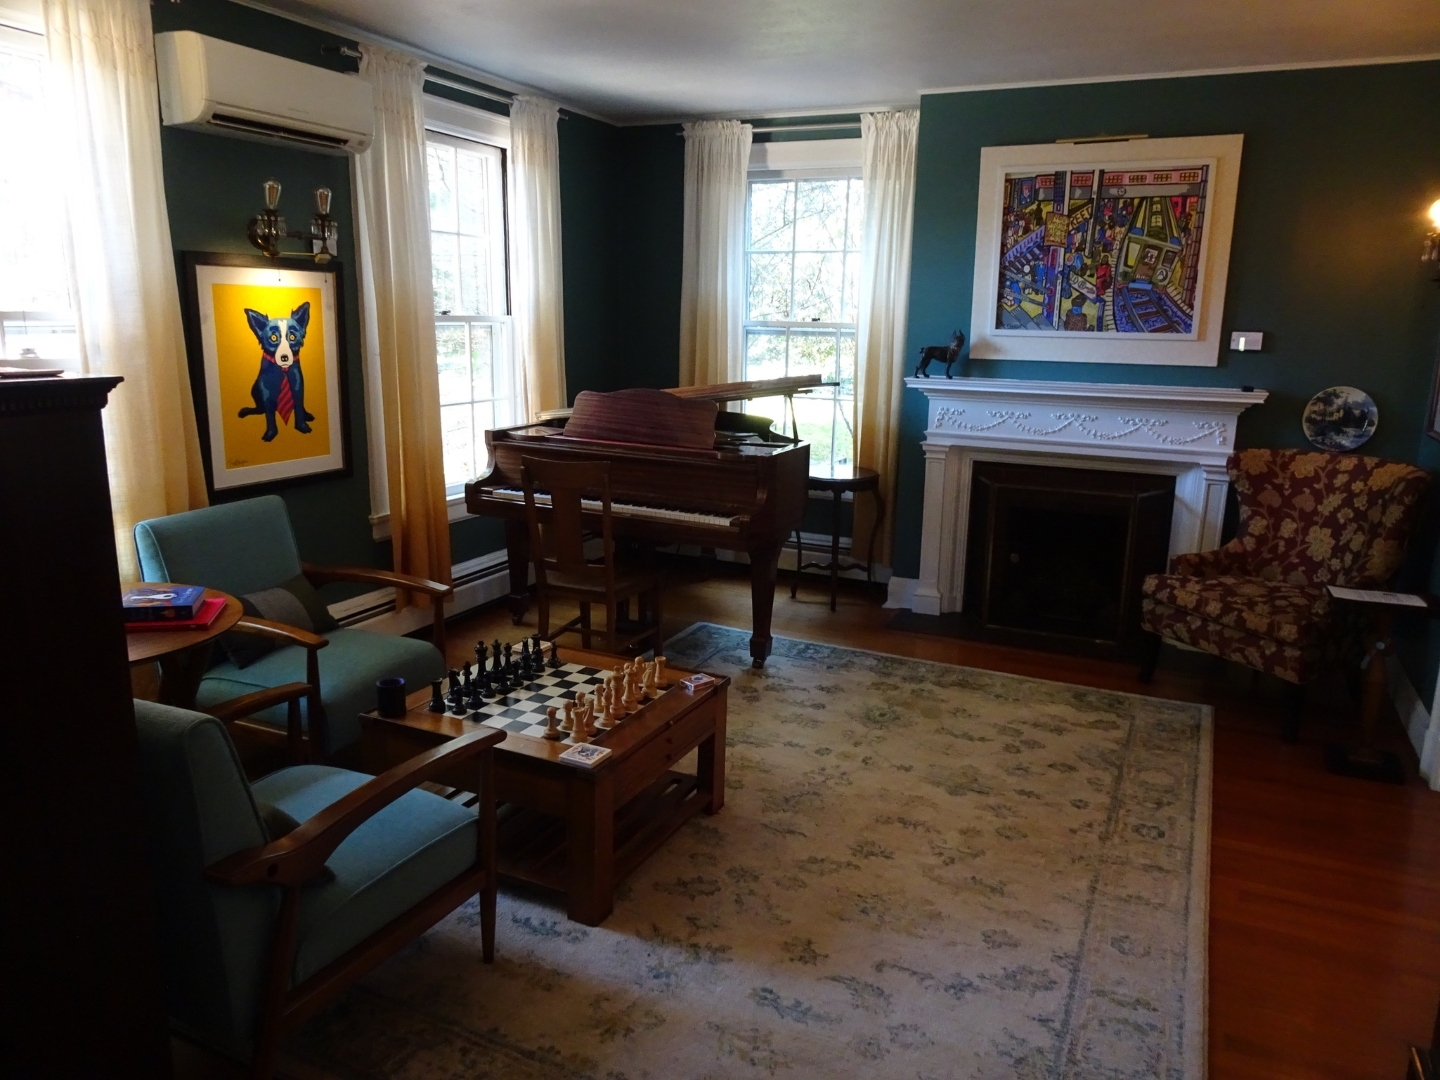 A living room filled with furniture and a large window at Applewood Manor.